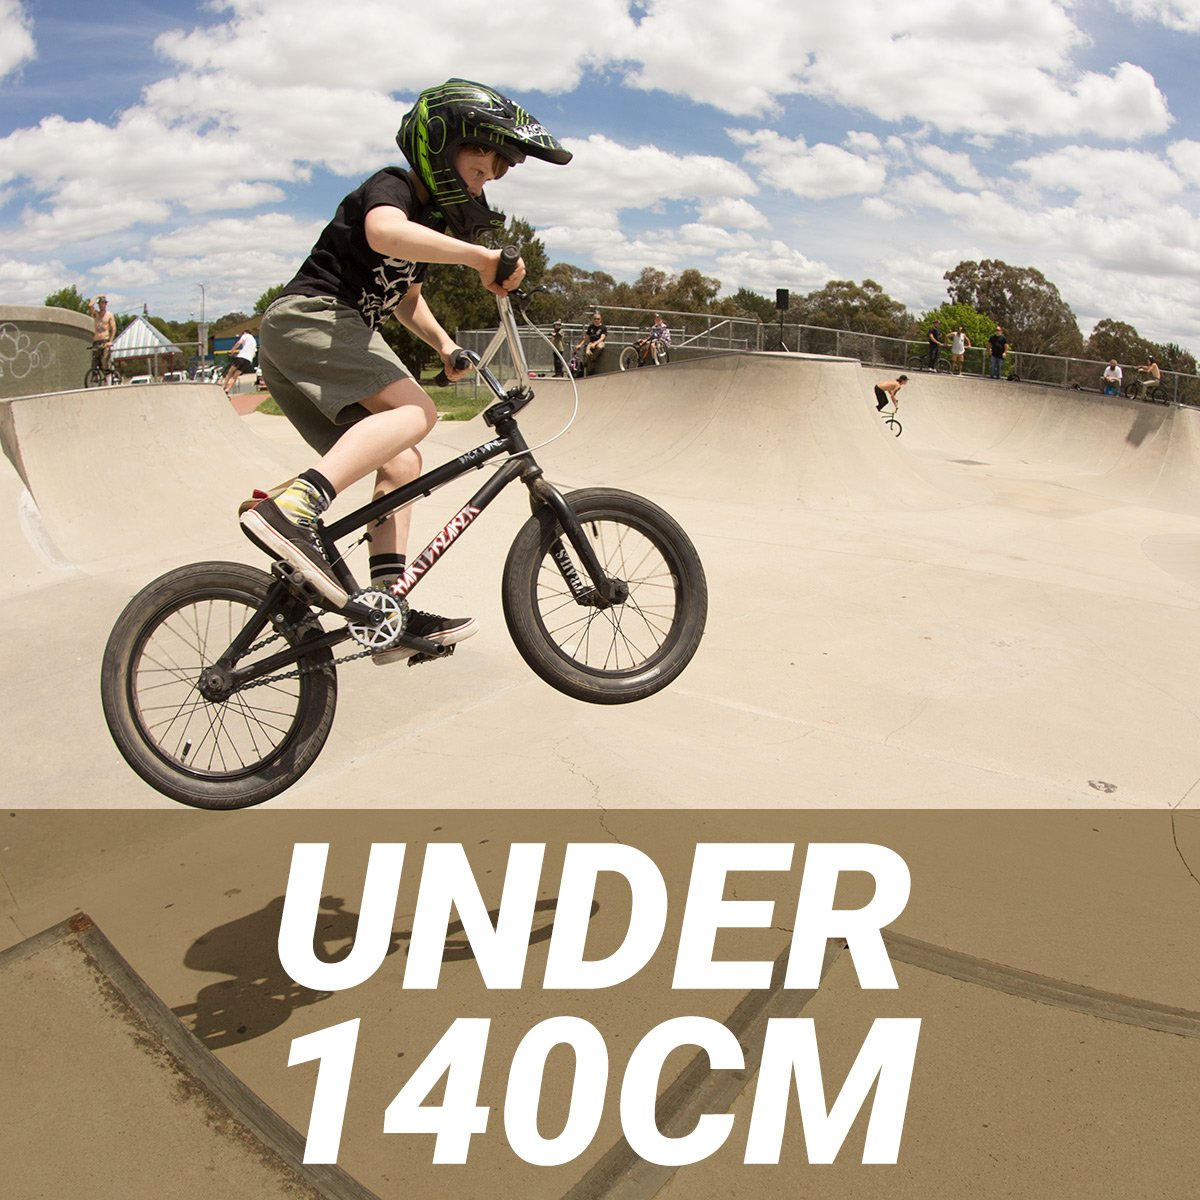 junior sized bmx bikes image